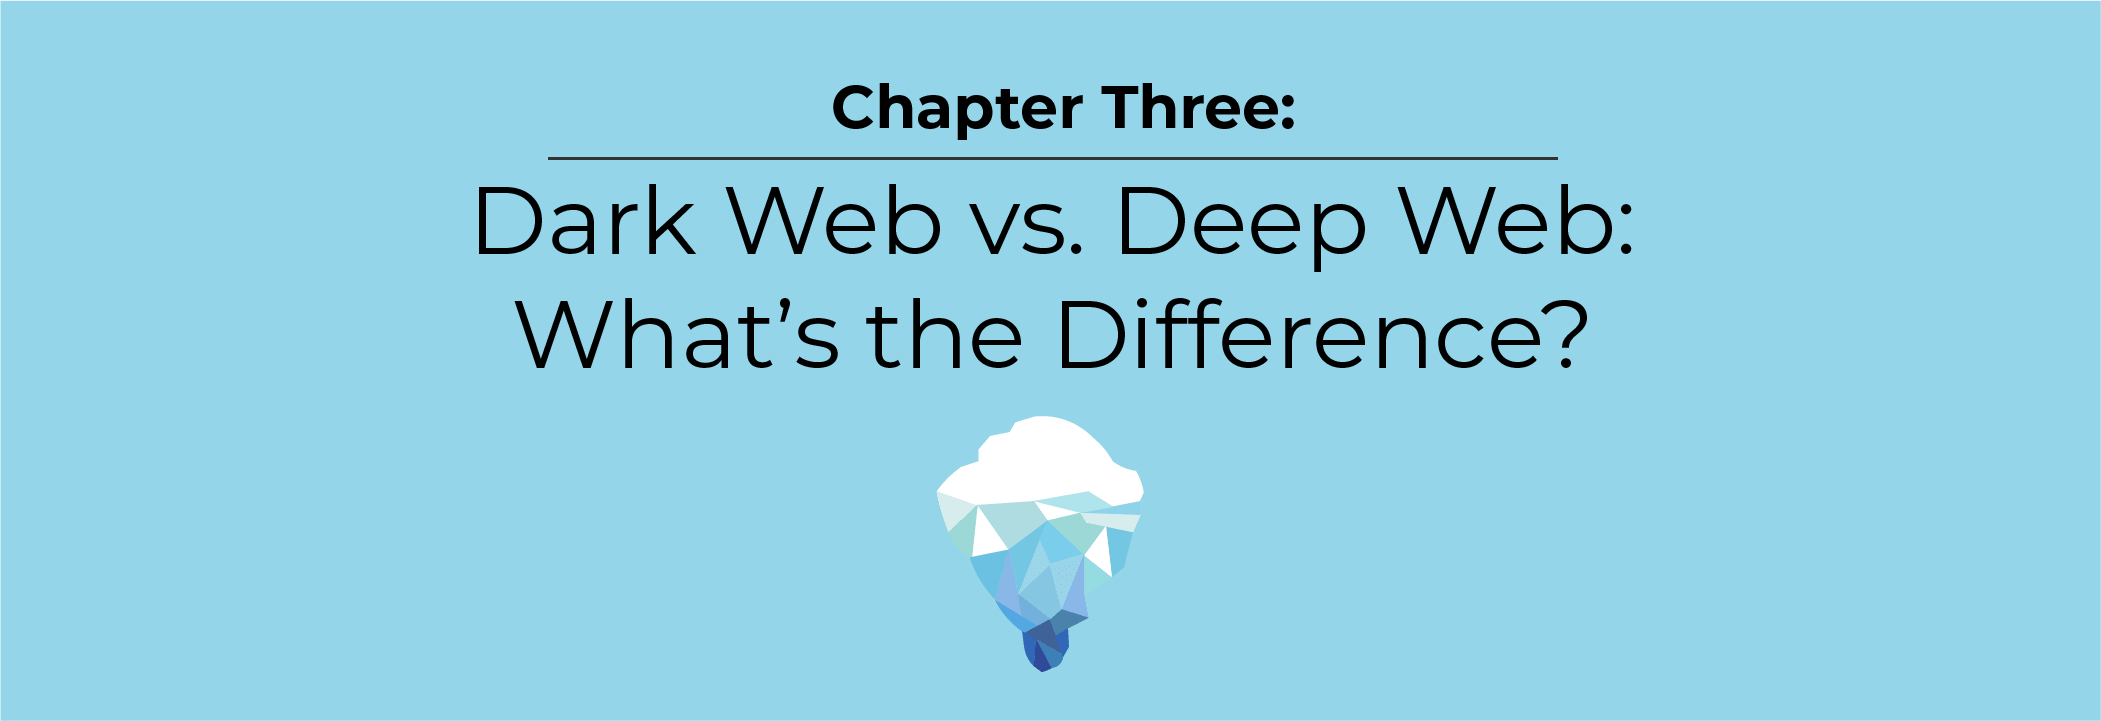 Dark Web vs. Deep Web: What's the Difference?